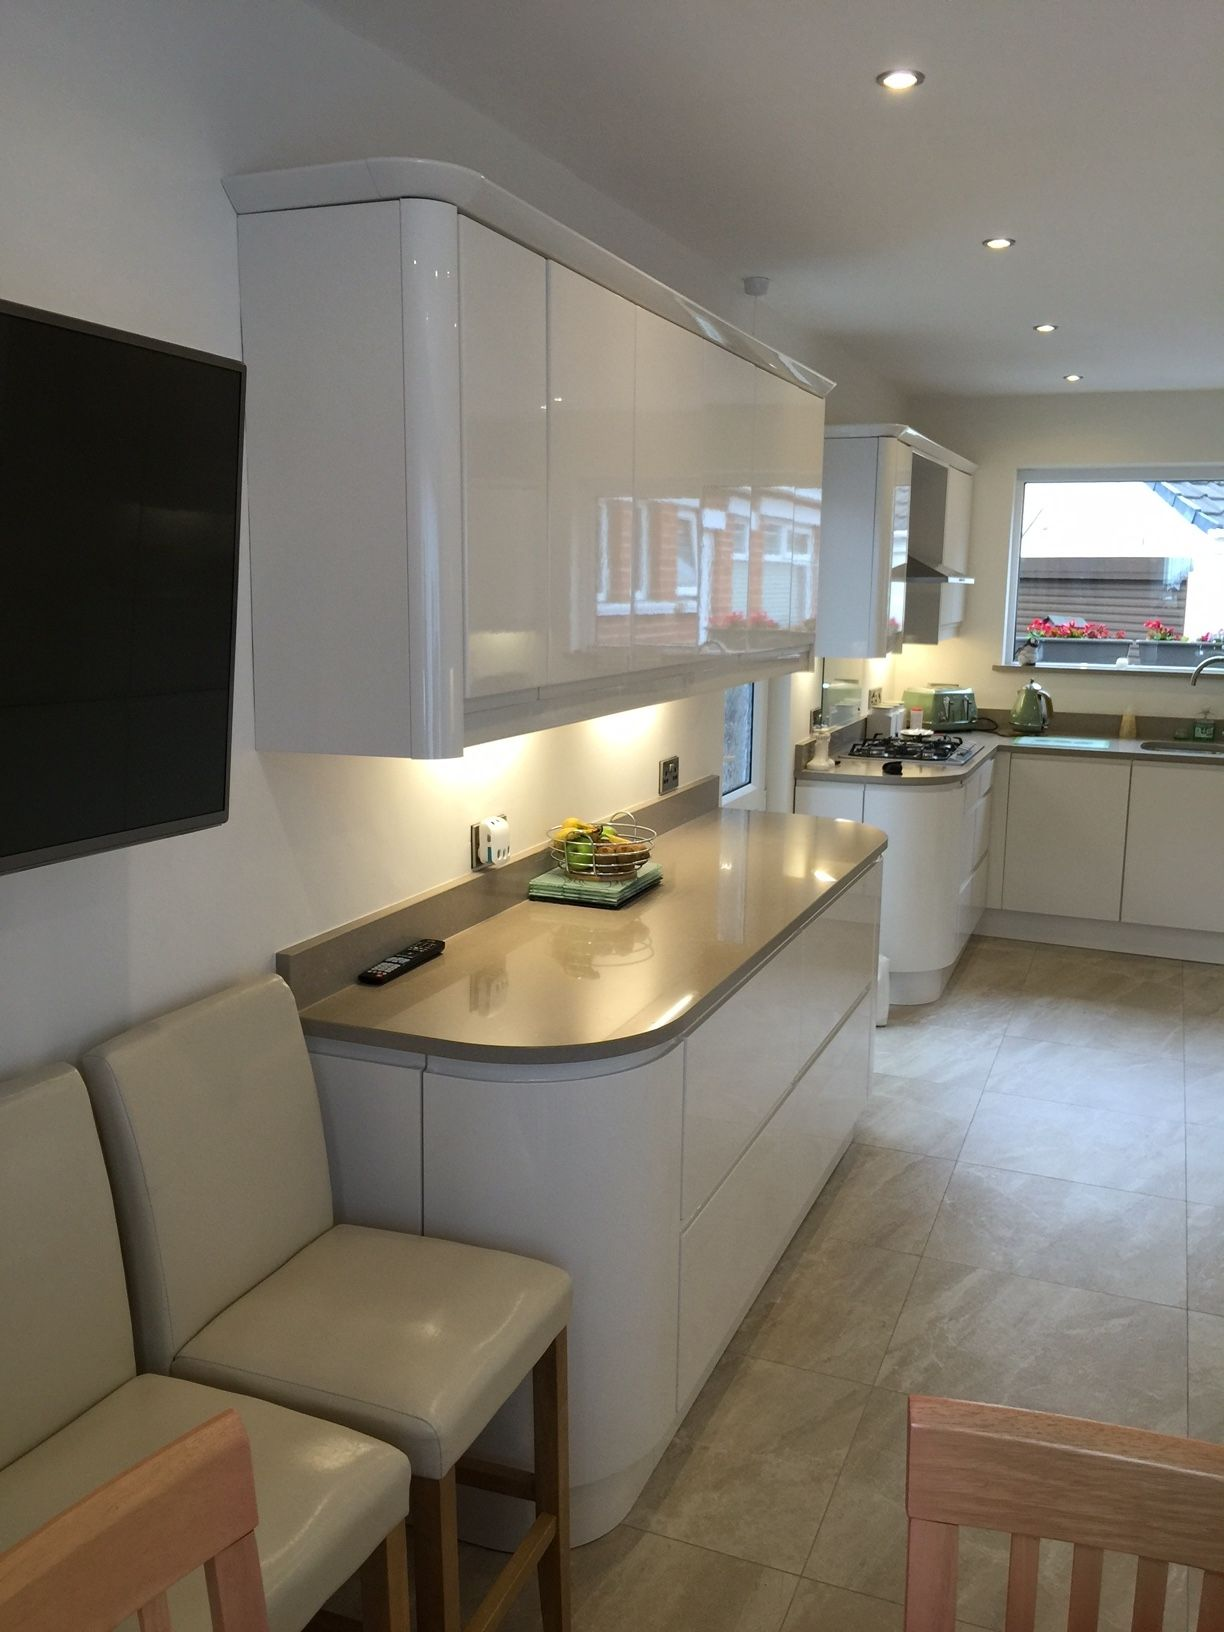 Pin by Kitchens Direct NI on Customer Kitchens in 2020